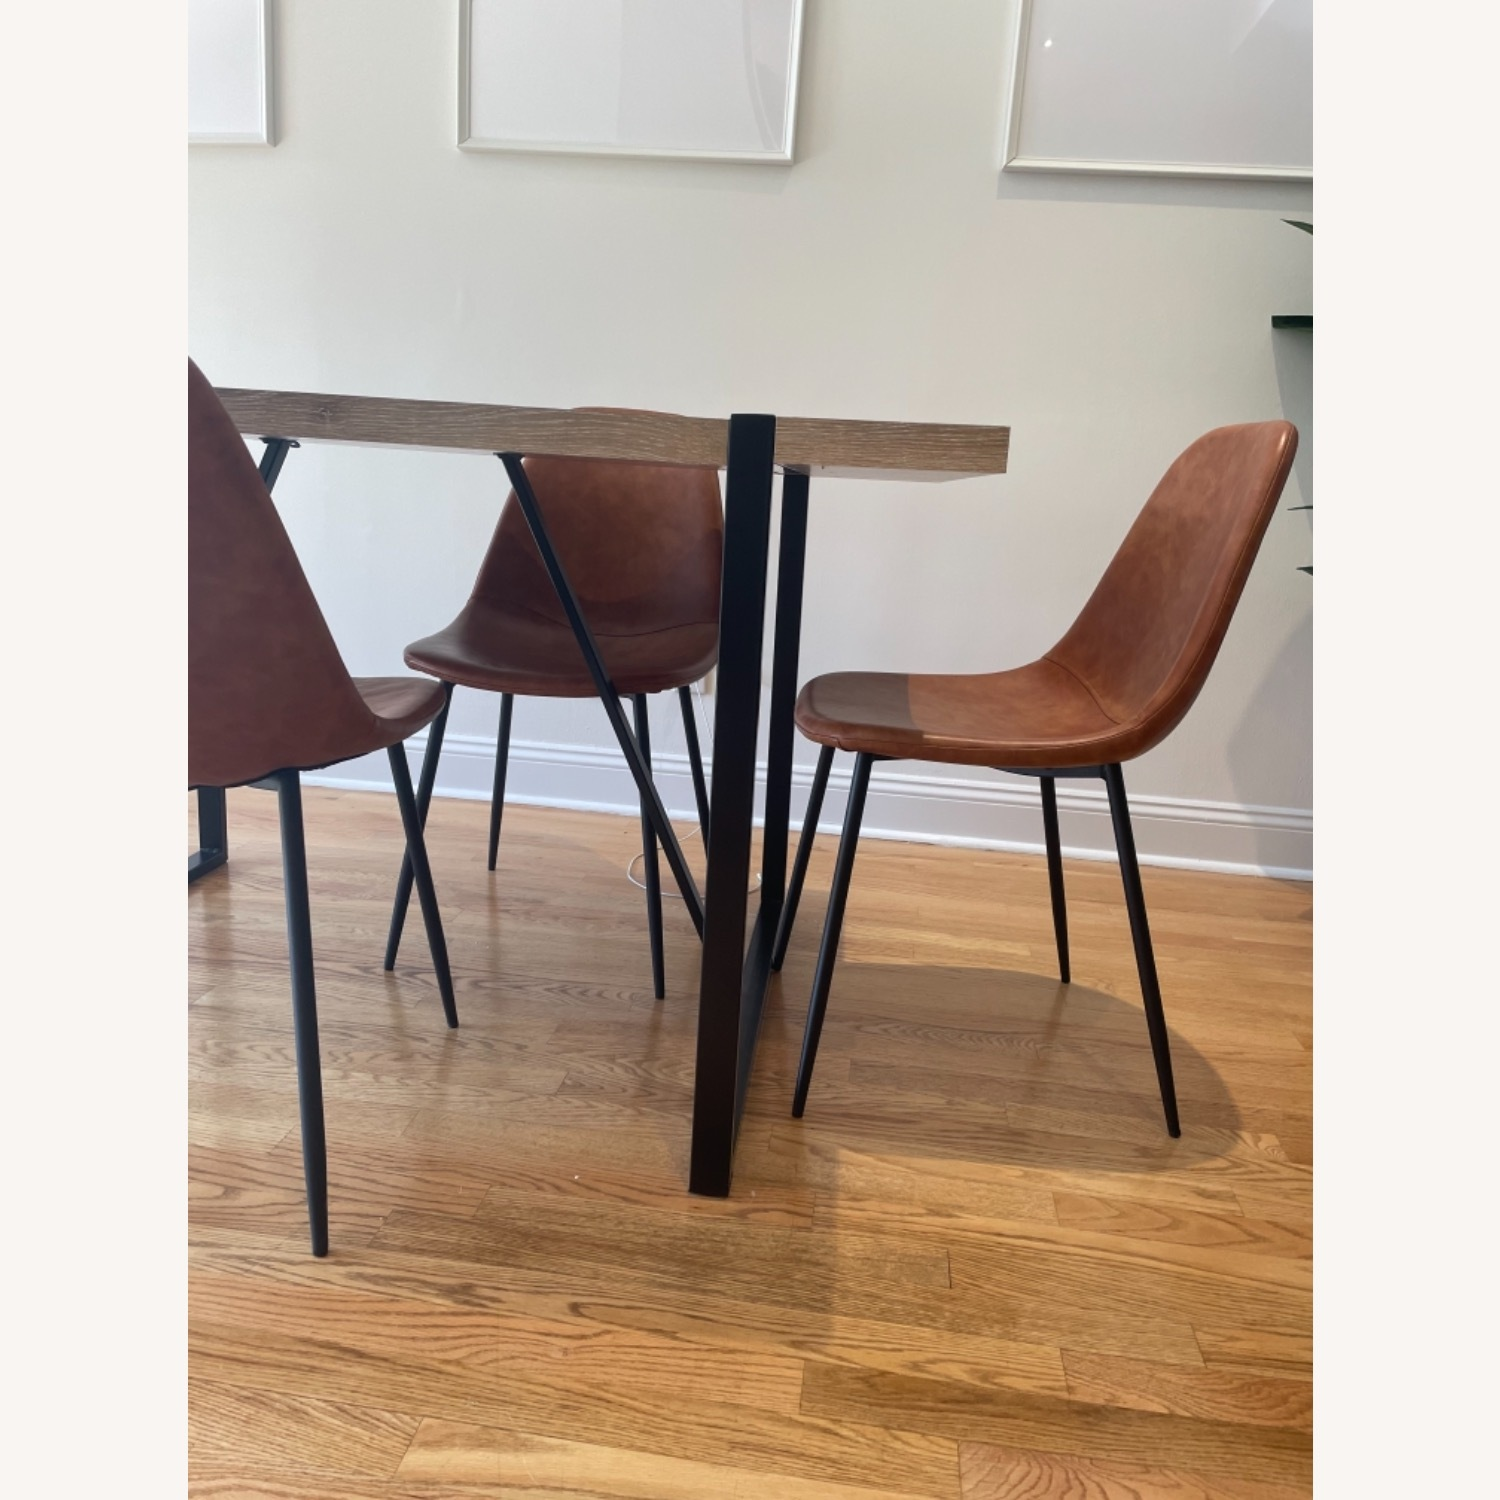 All Modern Tan Leather Dining Chair Set of 4 - image-2